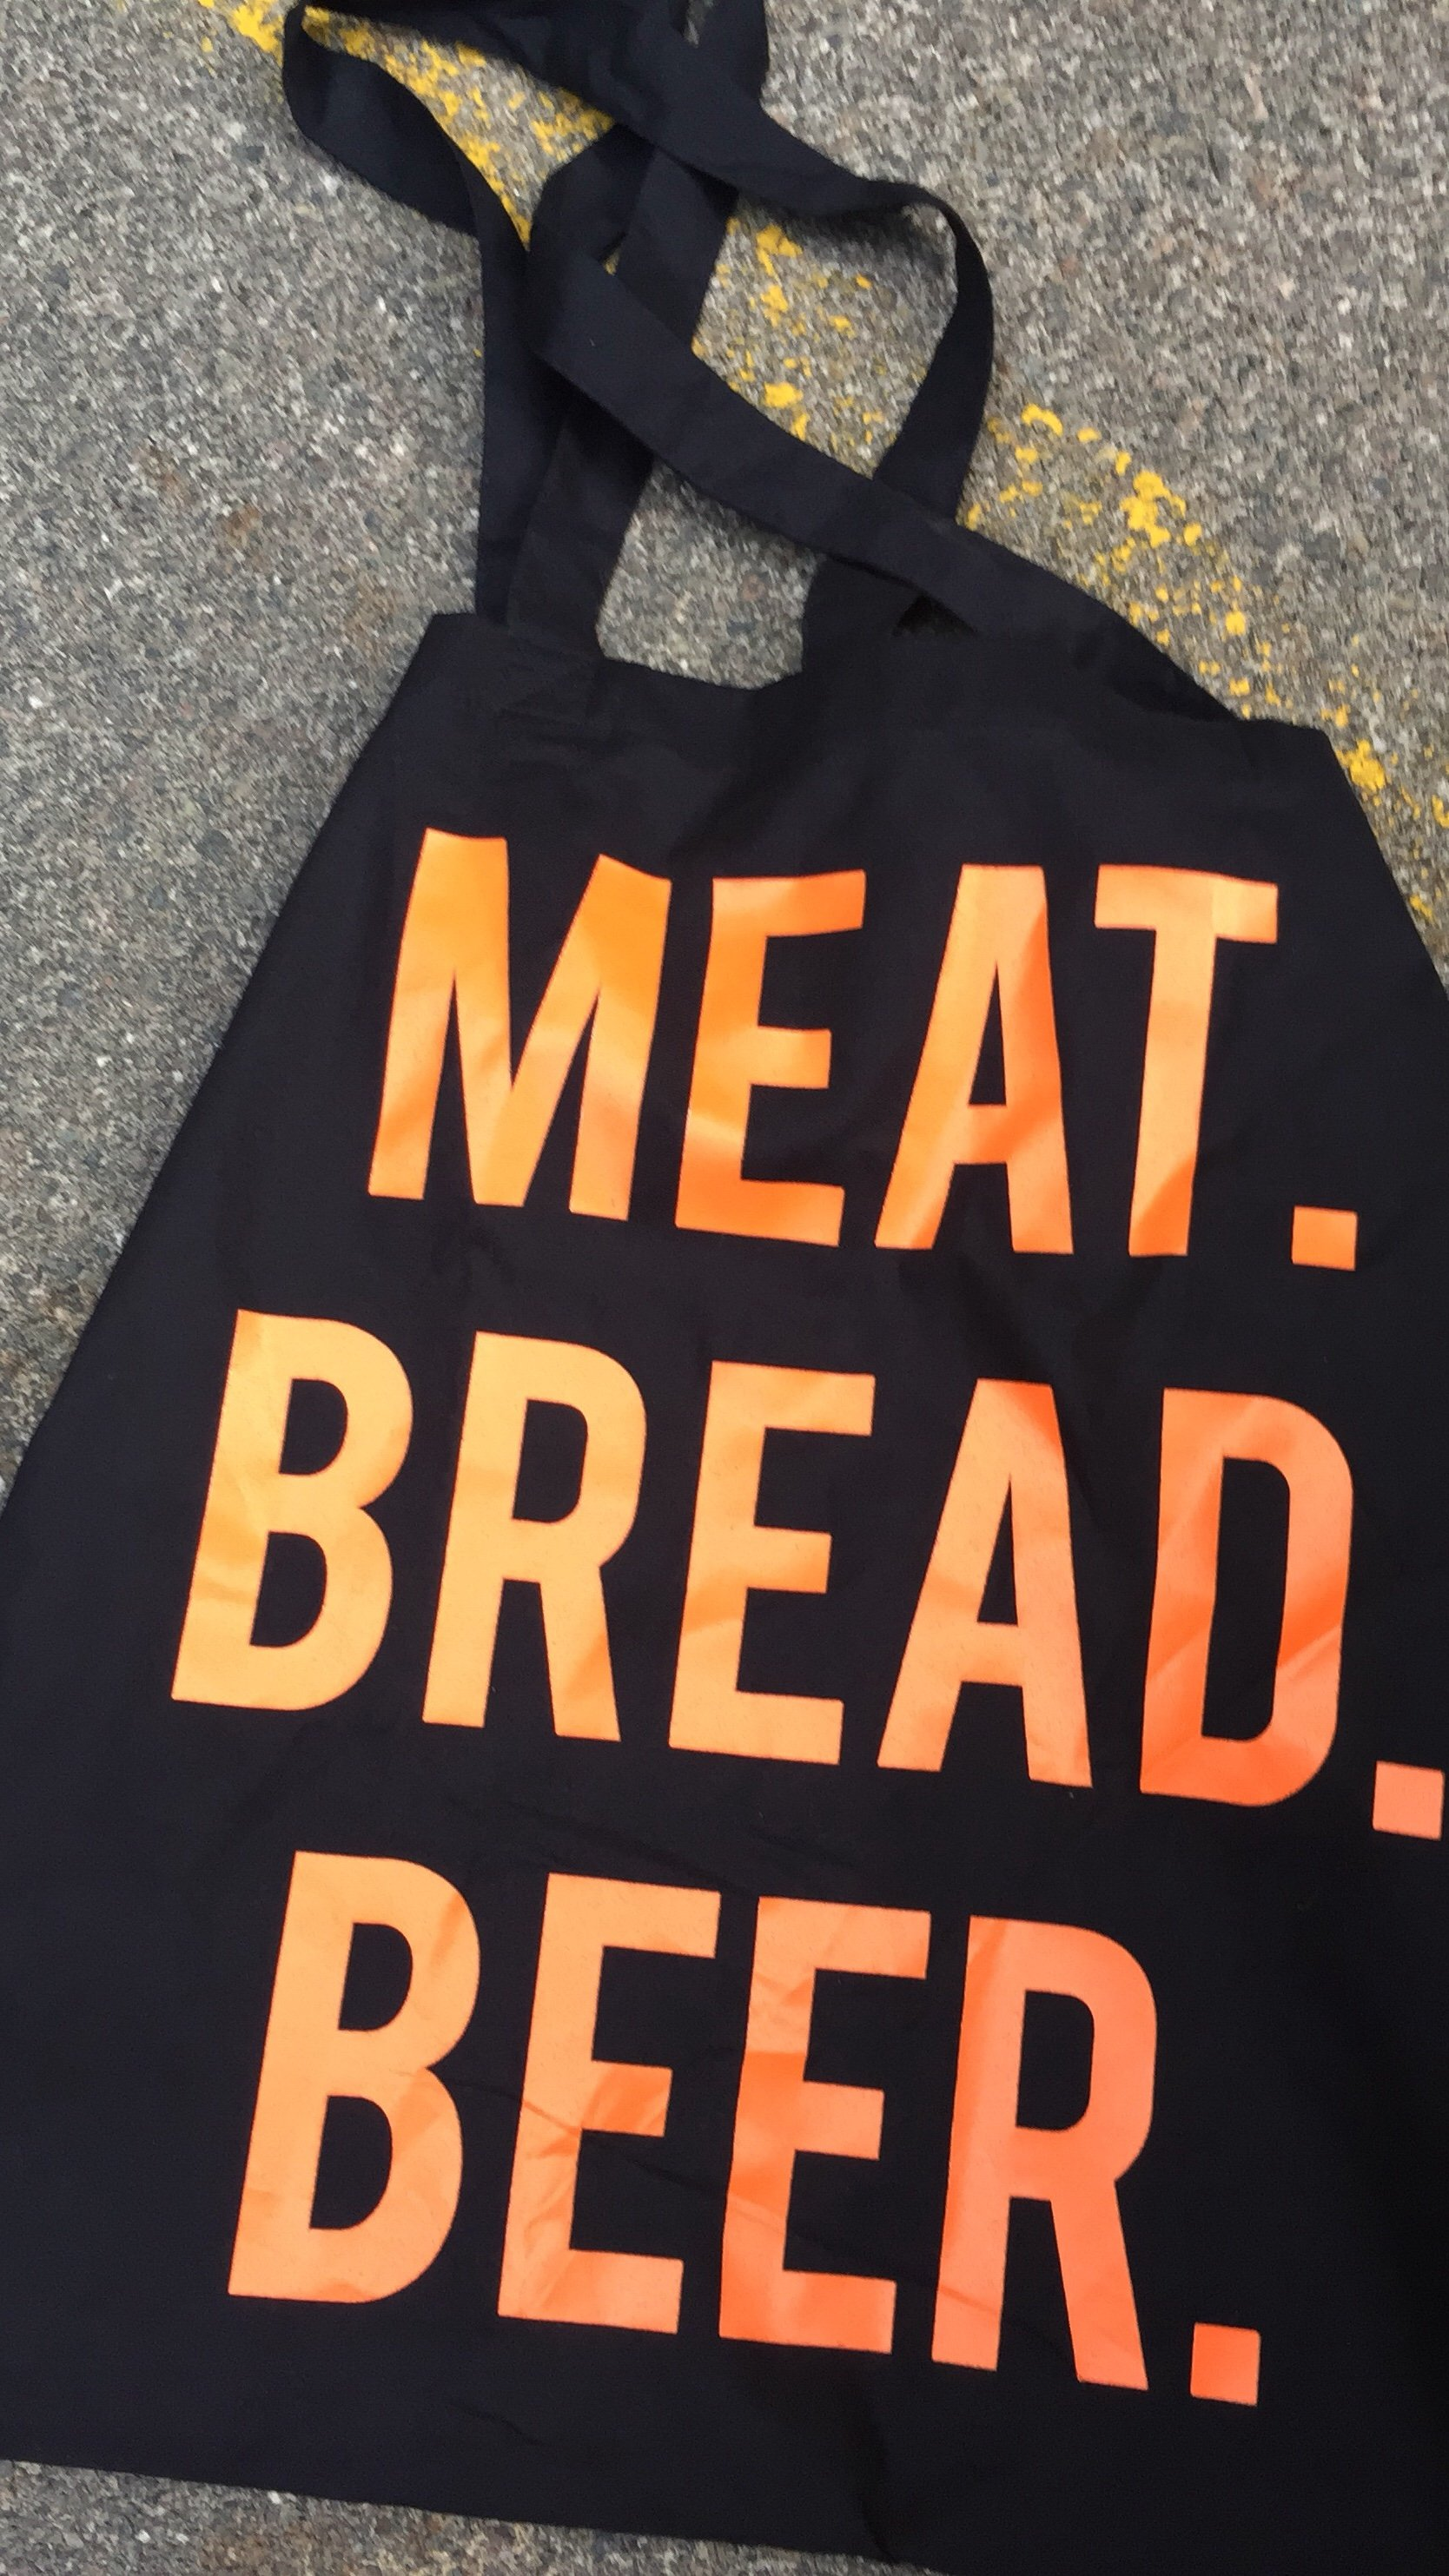 The Lock and Key Beer Con at The Bond in Digbeth. Tote Bag from The Pint Shop. Meat Bread Beer